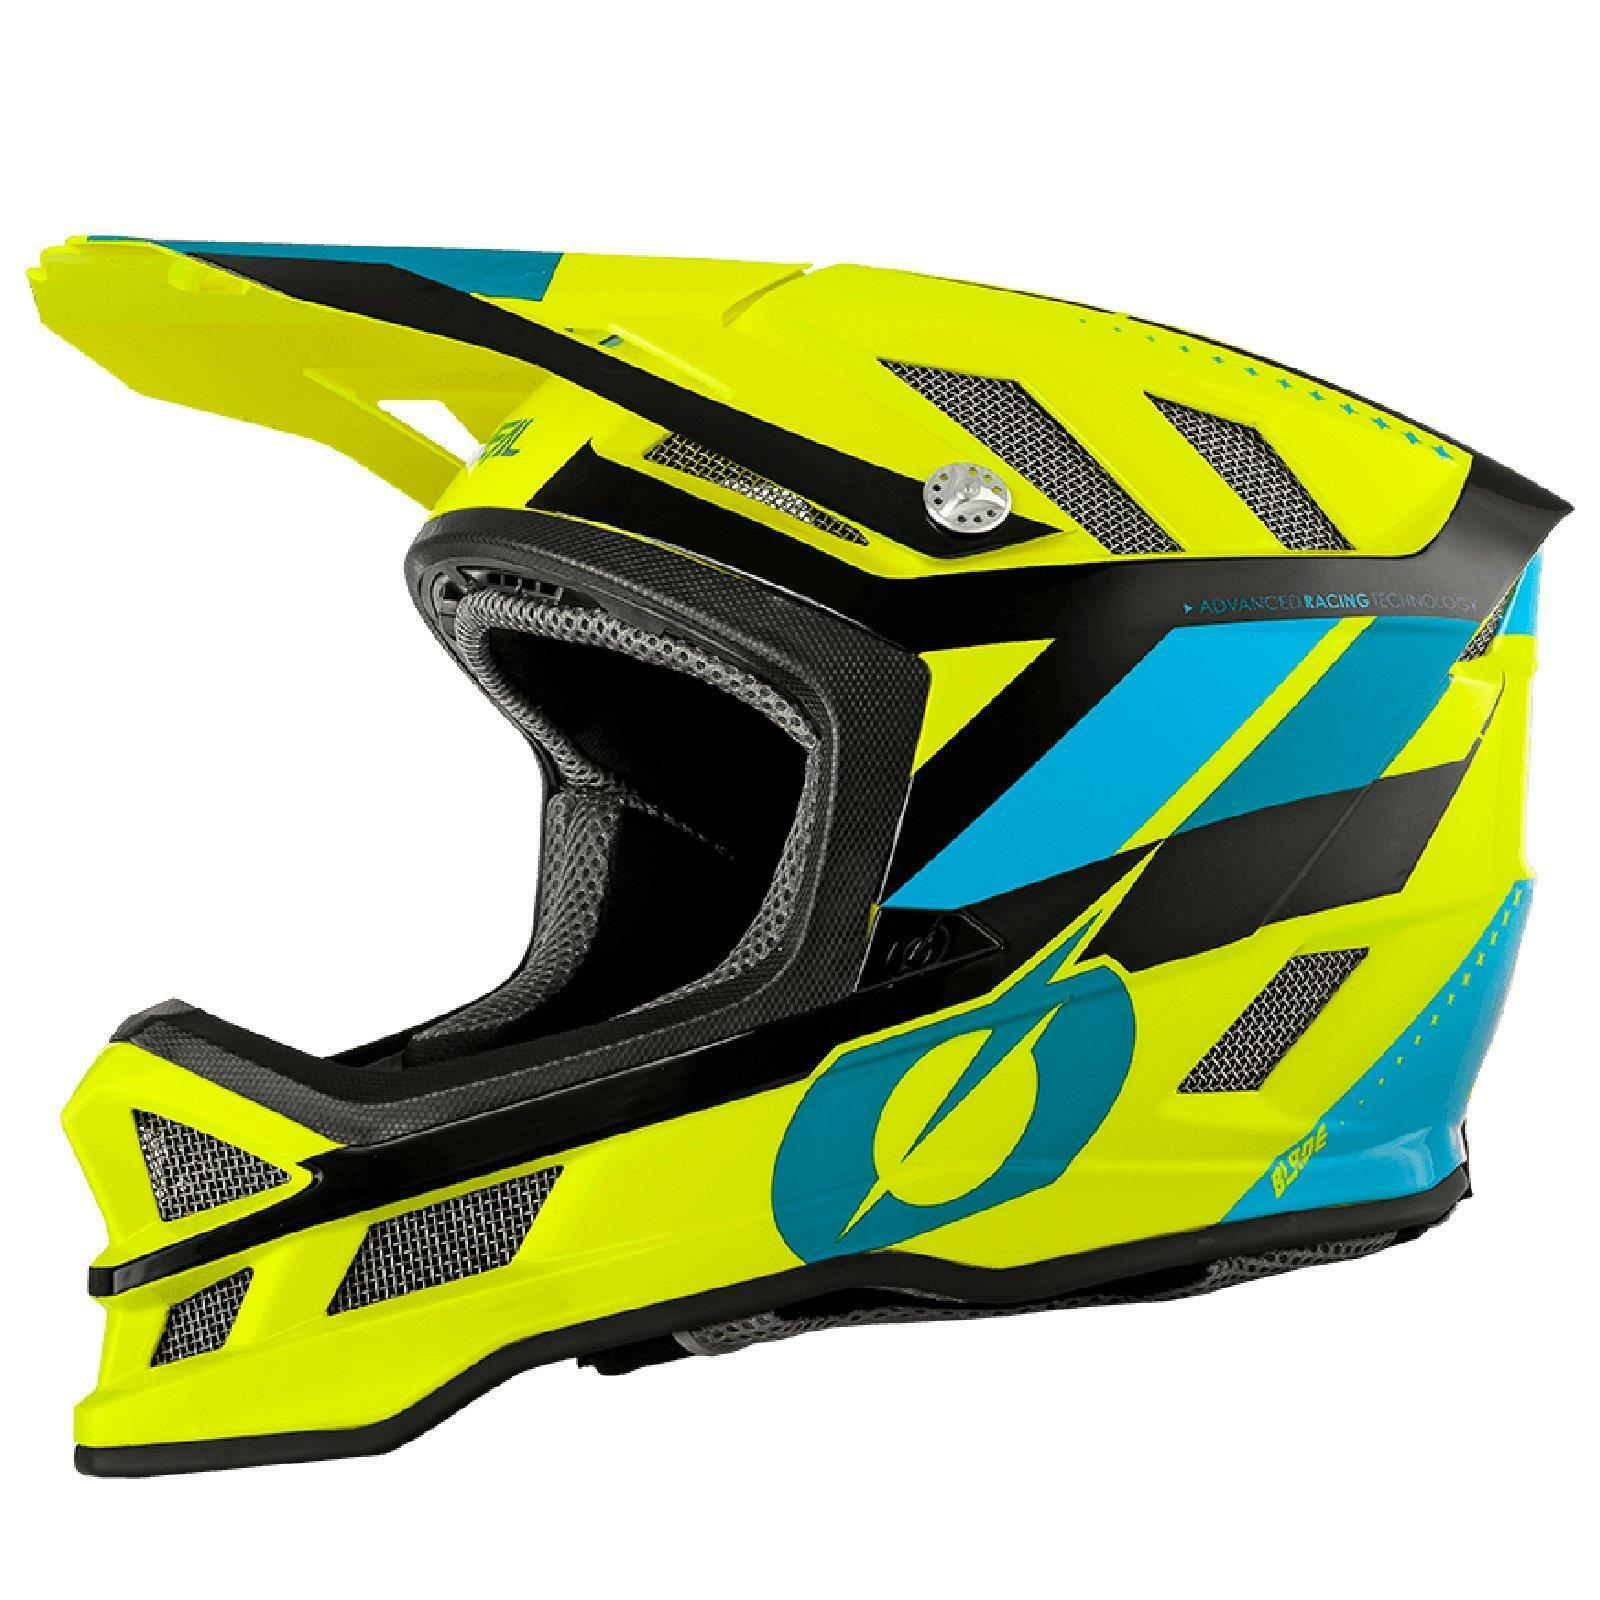 ONEAL Blade Synapse  IPX Bicycle Helmet Neon Yellow All Mountain Bike MTB Downhill  hot limited edition